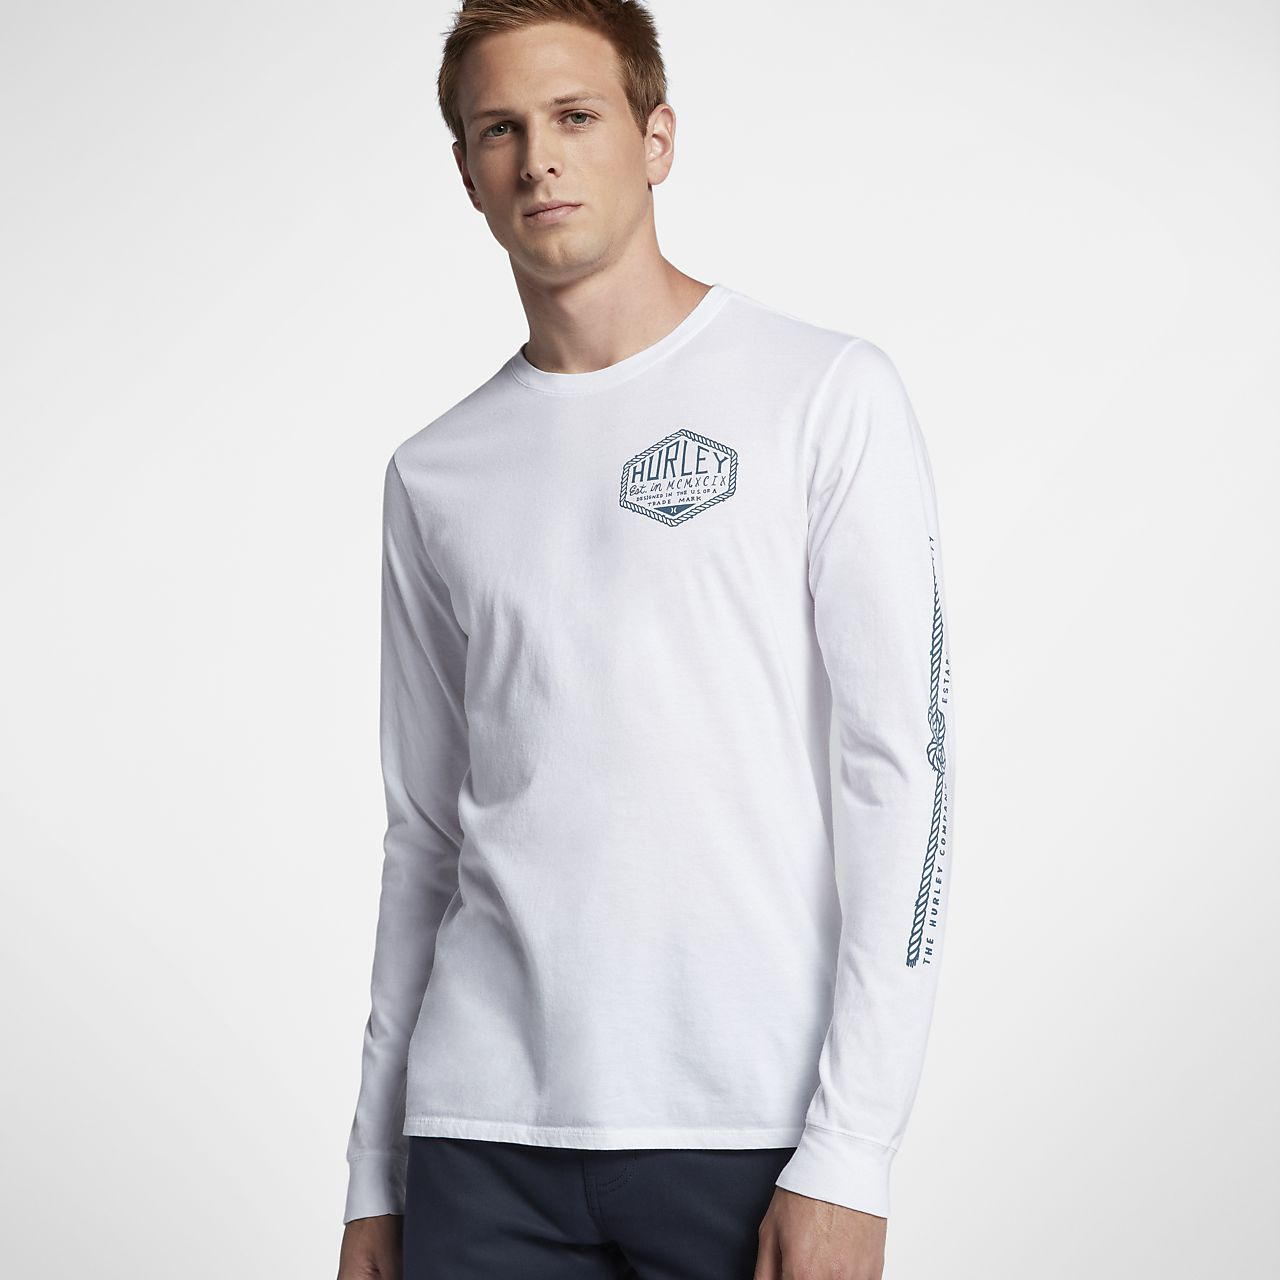 Hurley framework men 39 s long sleeve t shirt Mens long sleeve white t shirt